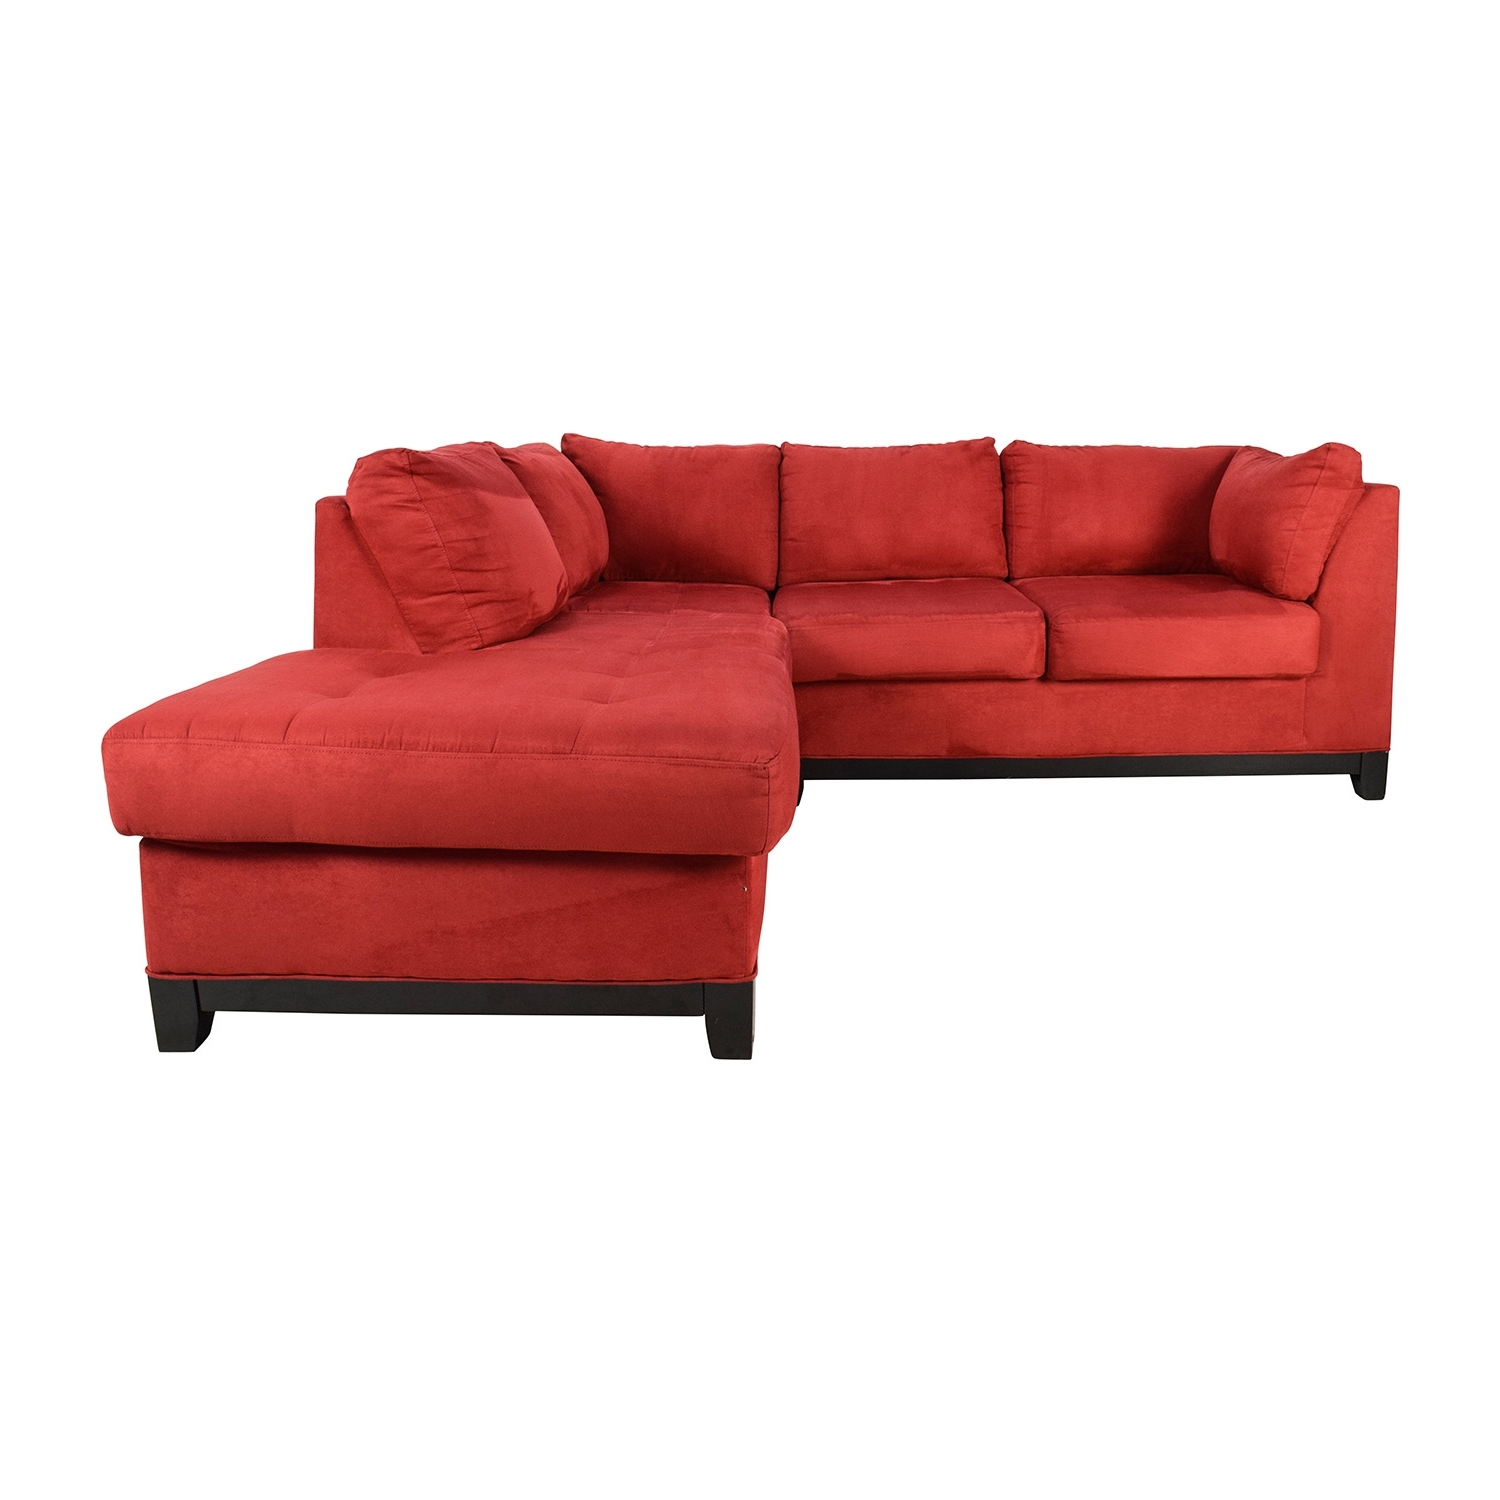 [%67% Off – Raymour And Flanigan Raymour & Flanigan Zella Red Intended For Well Known Sectional Sofas At Raymour And Flanigan|Sectional Sofas At Raymour And Flanigan With Regard To Trendy 67% Off – Raymour And Flanigan Raymour & Flanigan Zella Red|Most Recent Sectional Sofas At Raymour And Flanigan With Regard To 67% Off – Raymour And Flanigan Raymour & Flanigan Zella Red|Recent 67% Off – Raymour And Flanigan Raymour & Flanigan Zella Red In Sectional Sofas At Raymour And Flanigan%] (View 4 of 15)